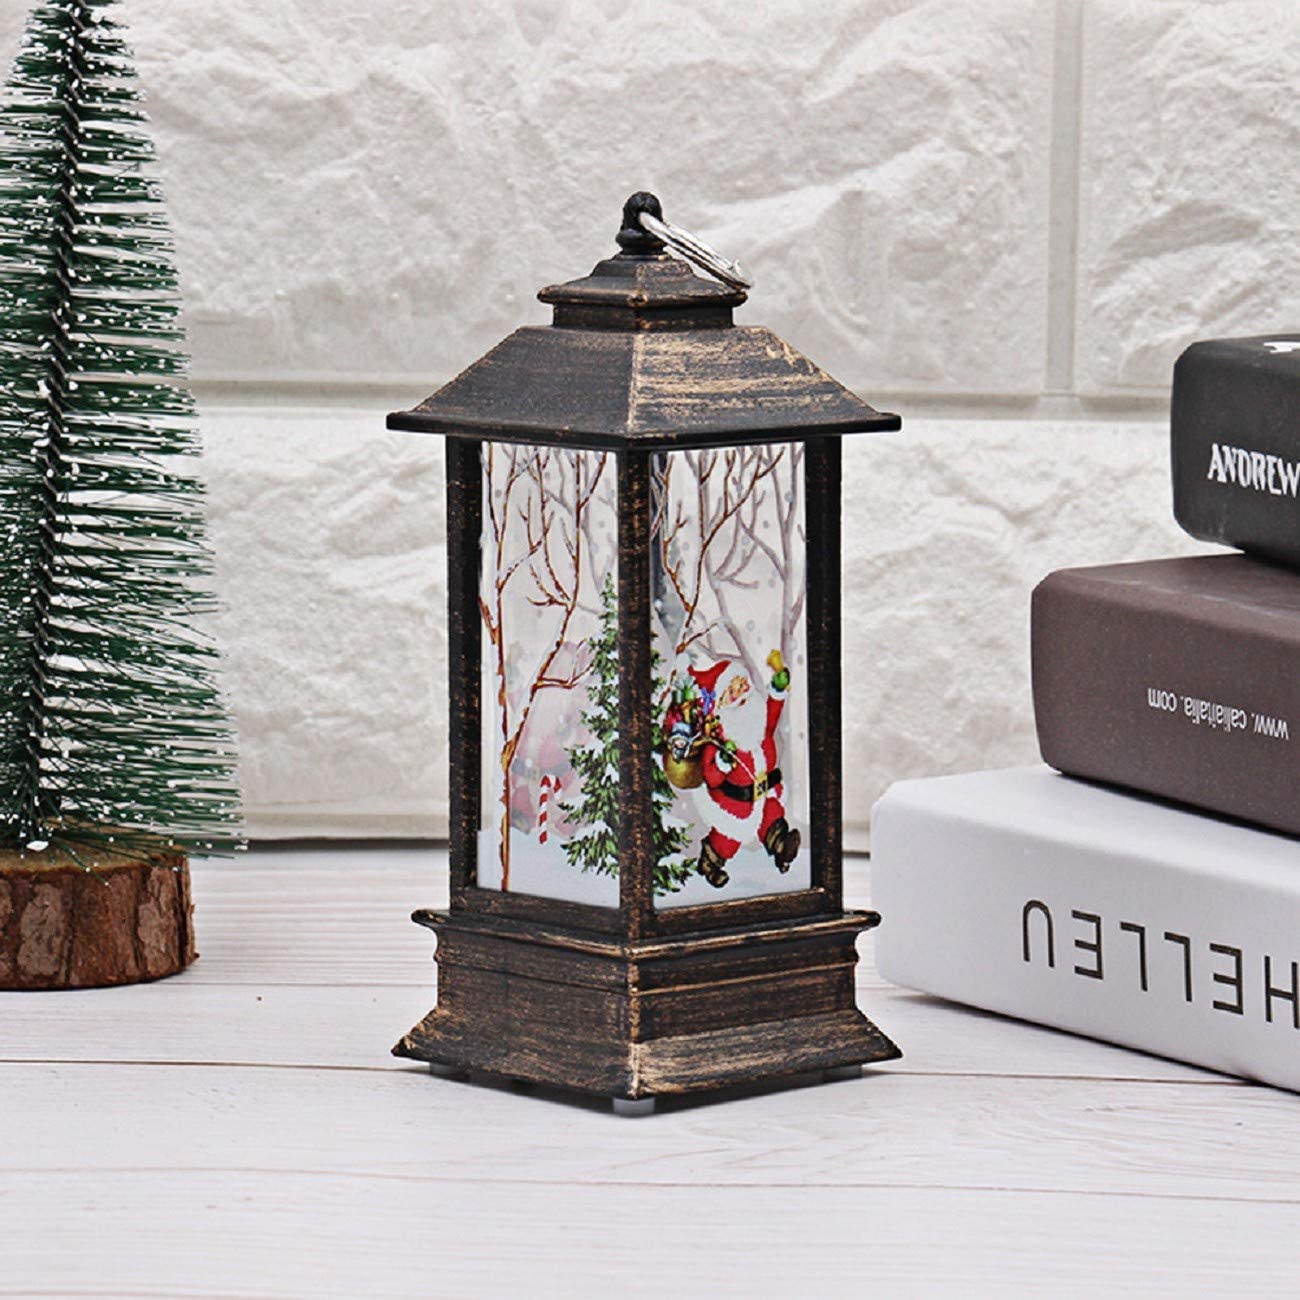 JKLING 1pcs Christmas Vintage Faux Candle with LED Night Light for Christmas Graphic Print Outdoor Decoration Pendant